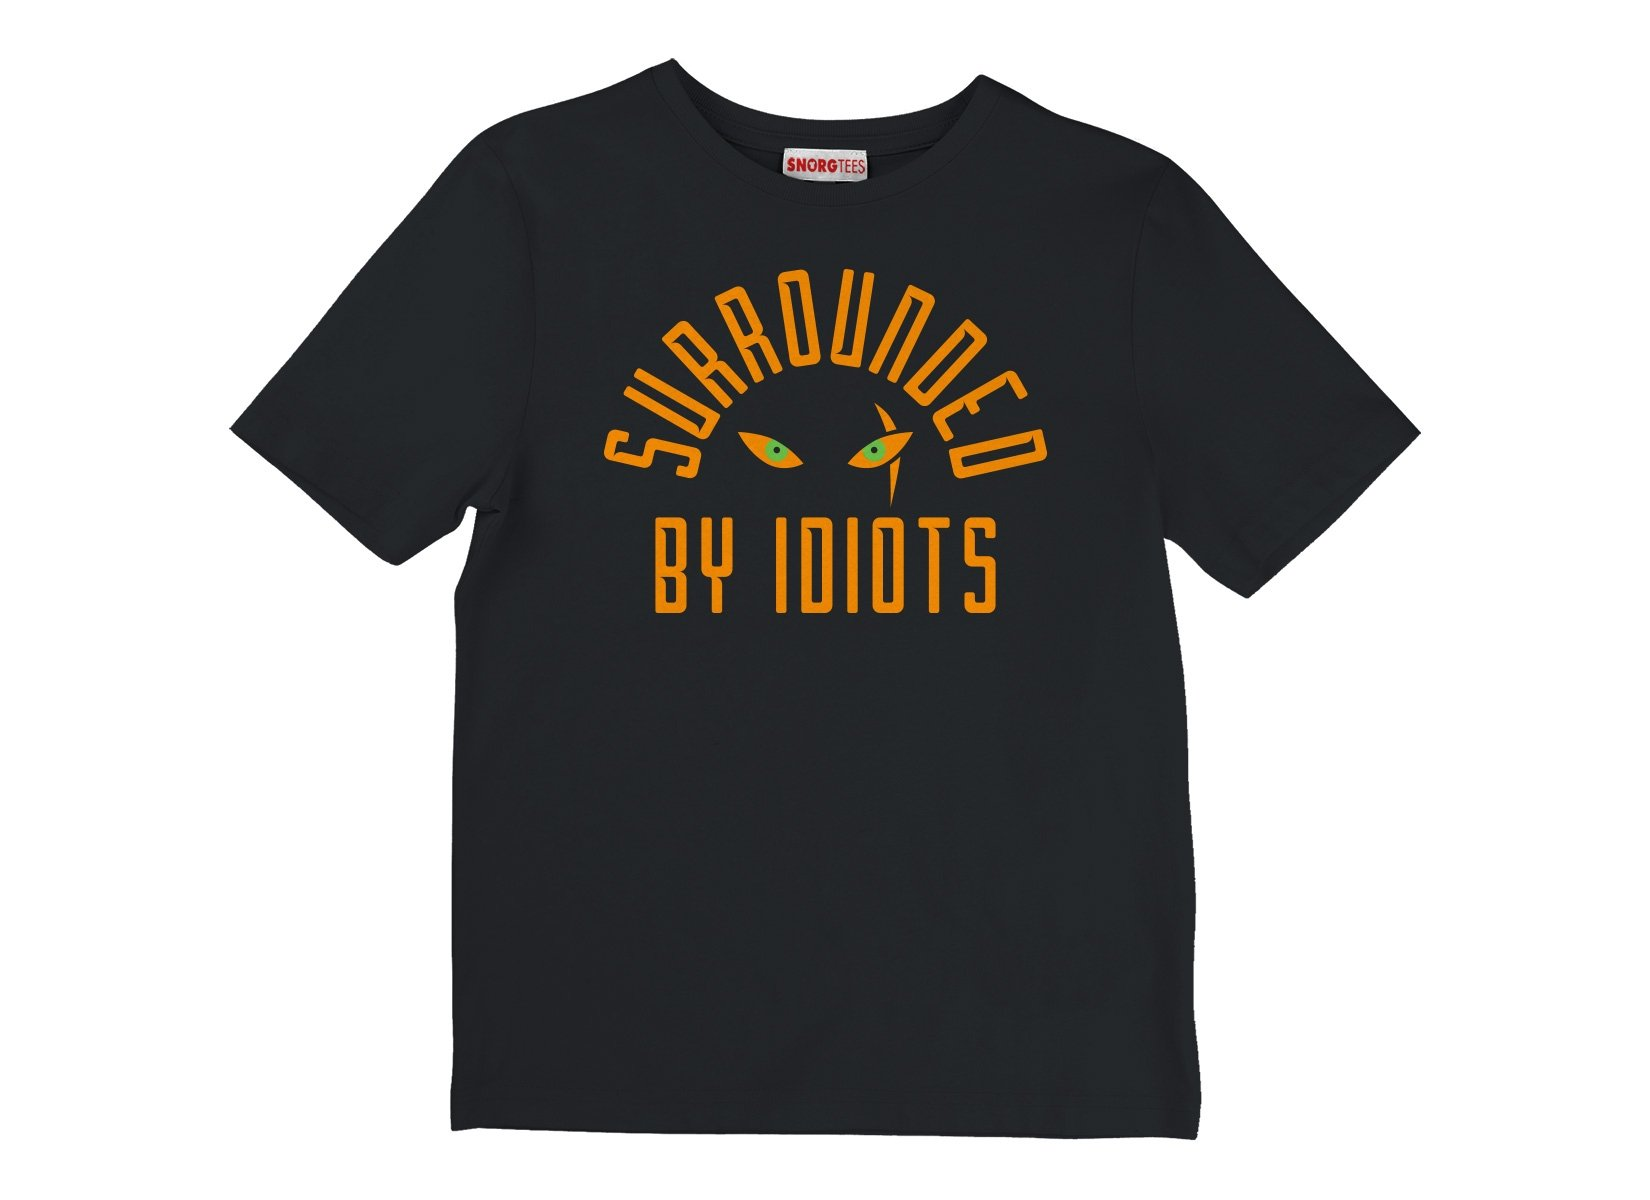 Surrounded By Idiots on Kids T-Shirt